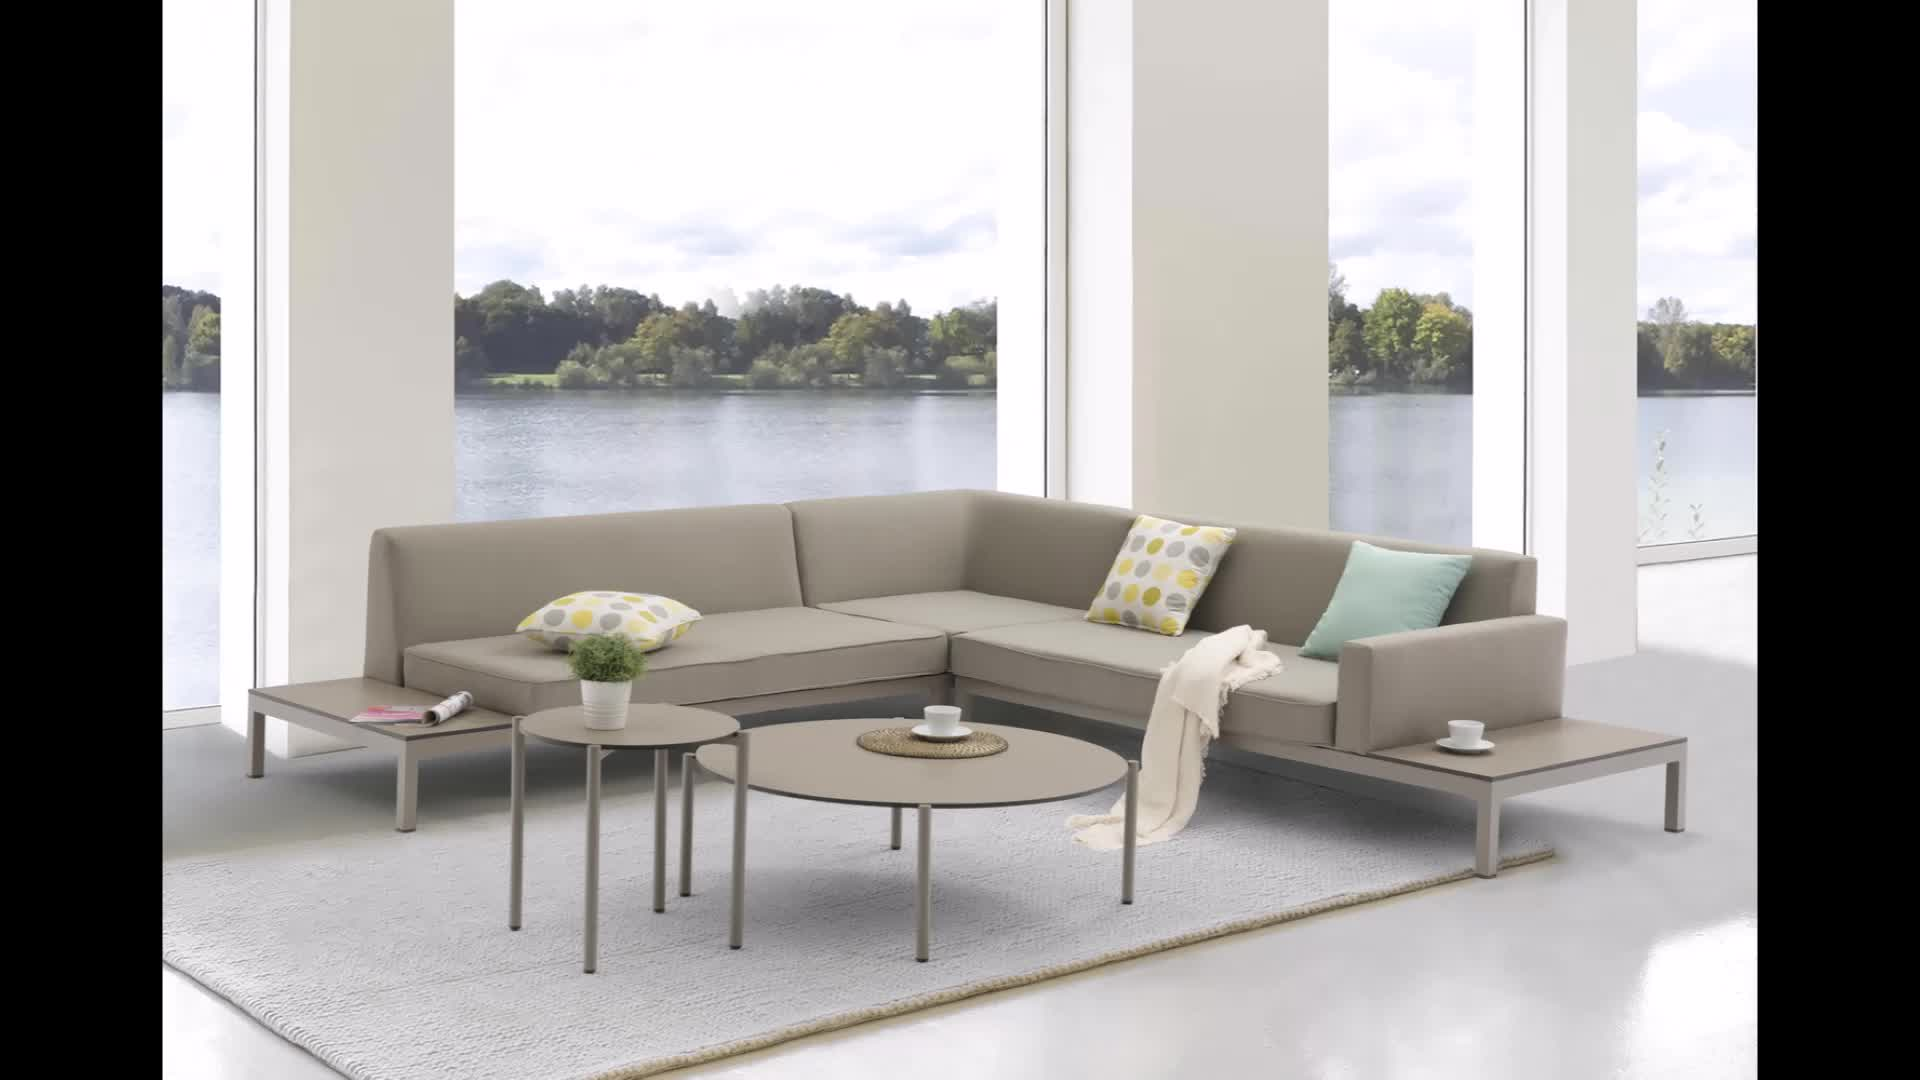 Tophine Furniture outdoor furniture set sofa gadern leisure sofa sets with cushions